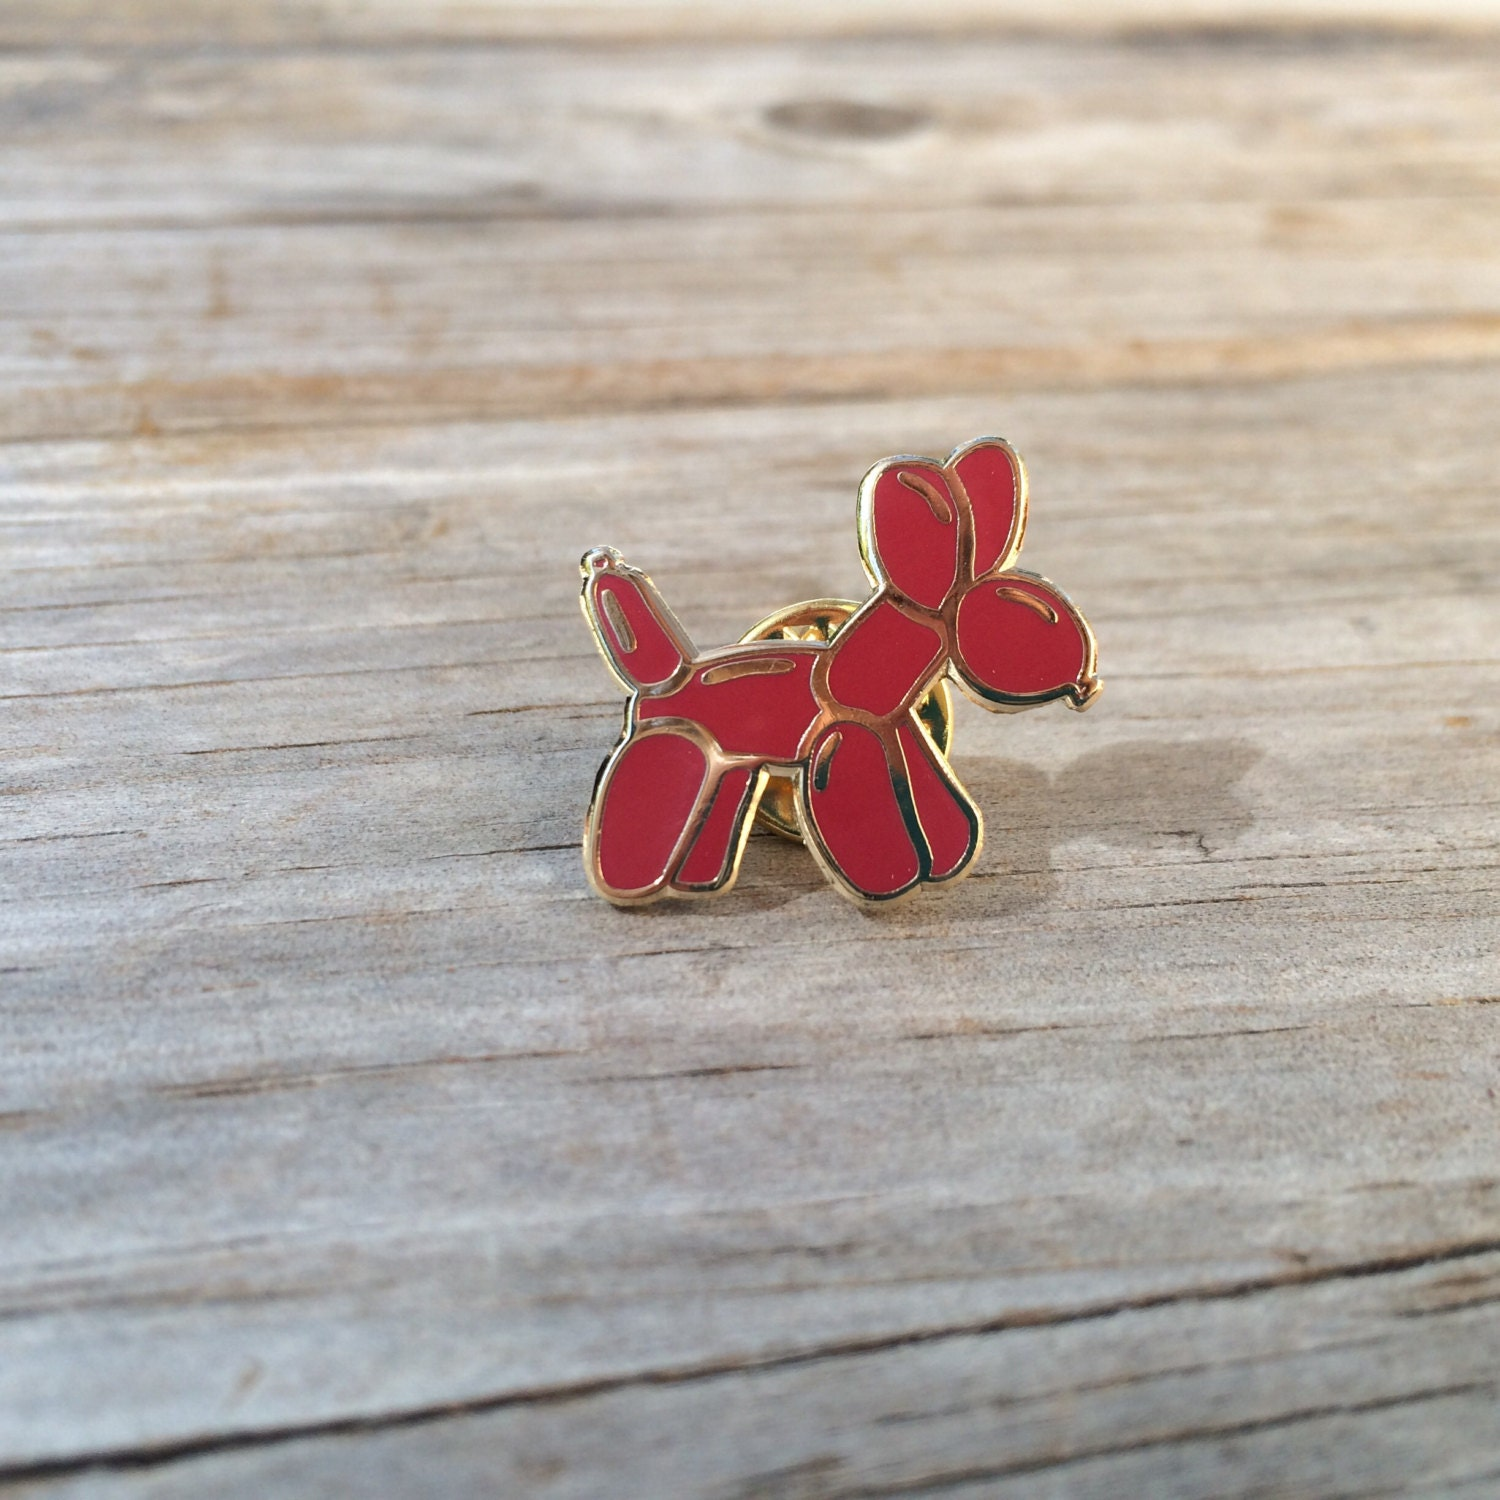 red balloon dog enamel pin hard enamel pin brooch gold pin